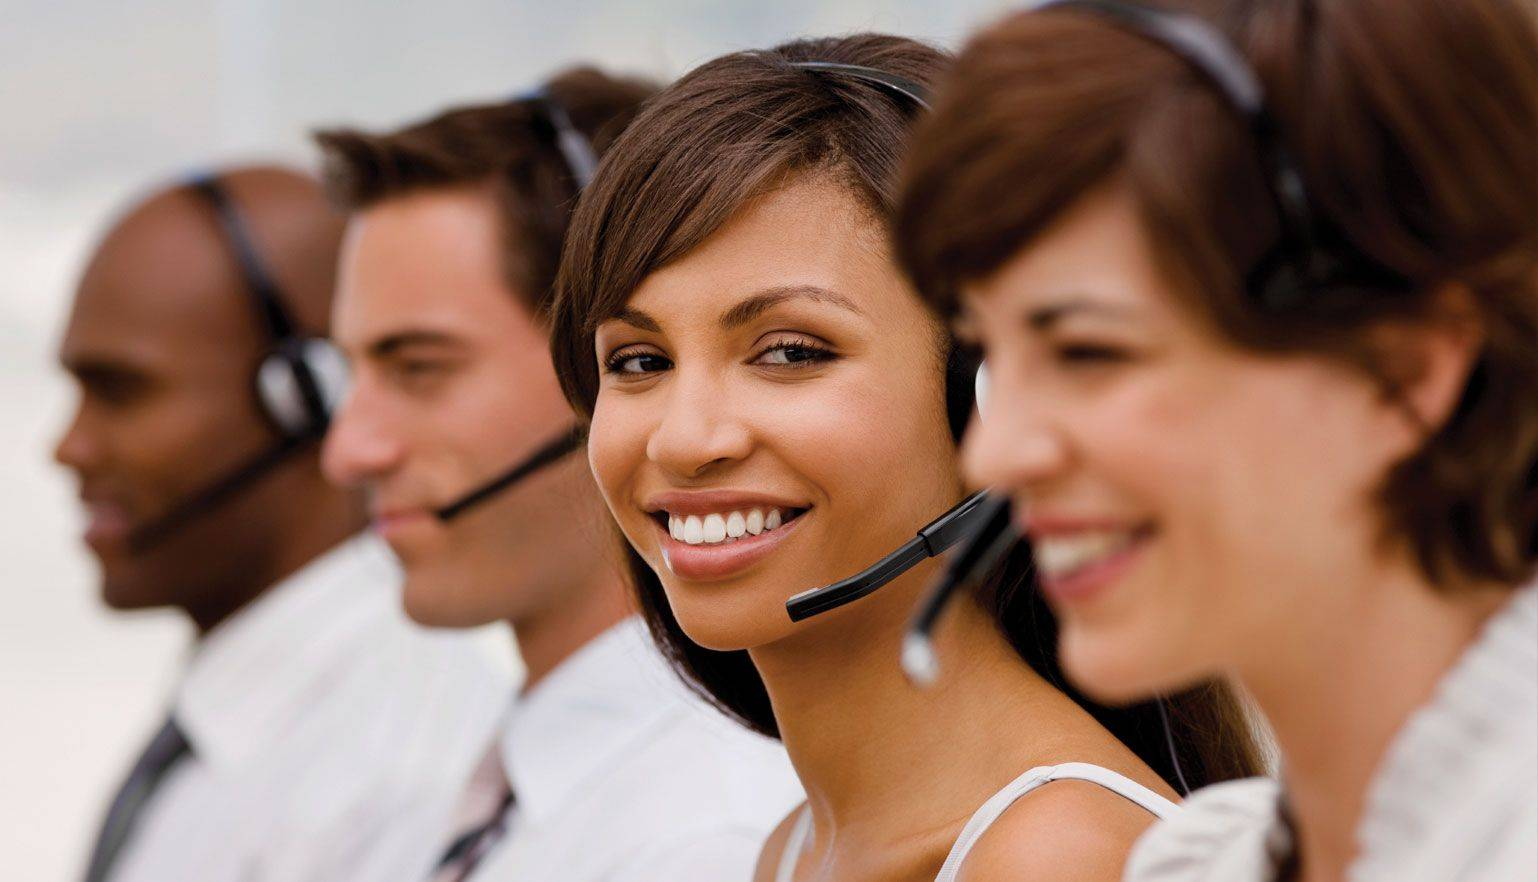 Advantages of availing BPO Services IO Digital Business Process Outsourcing